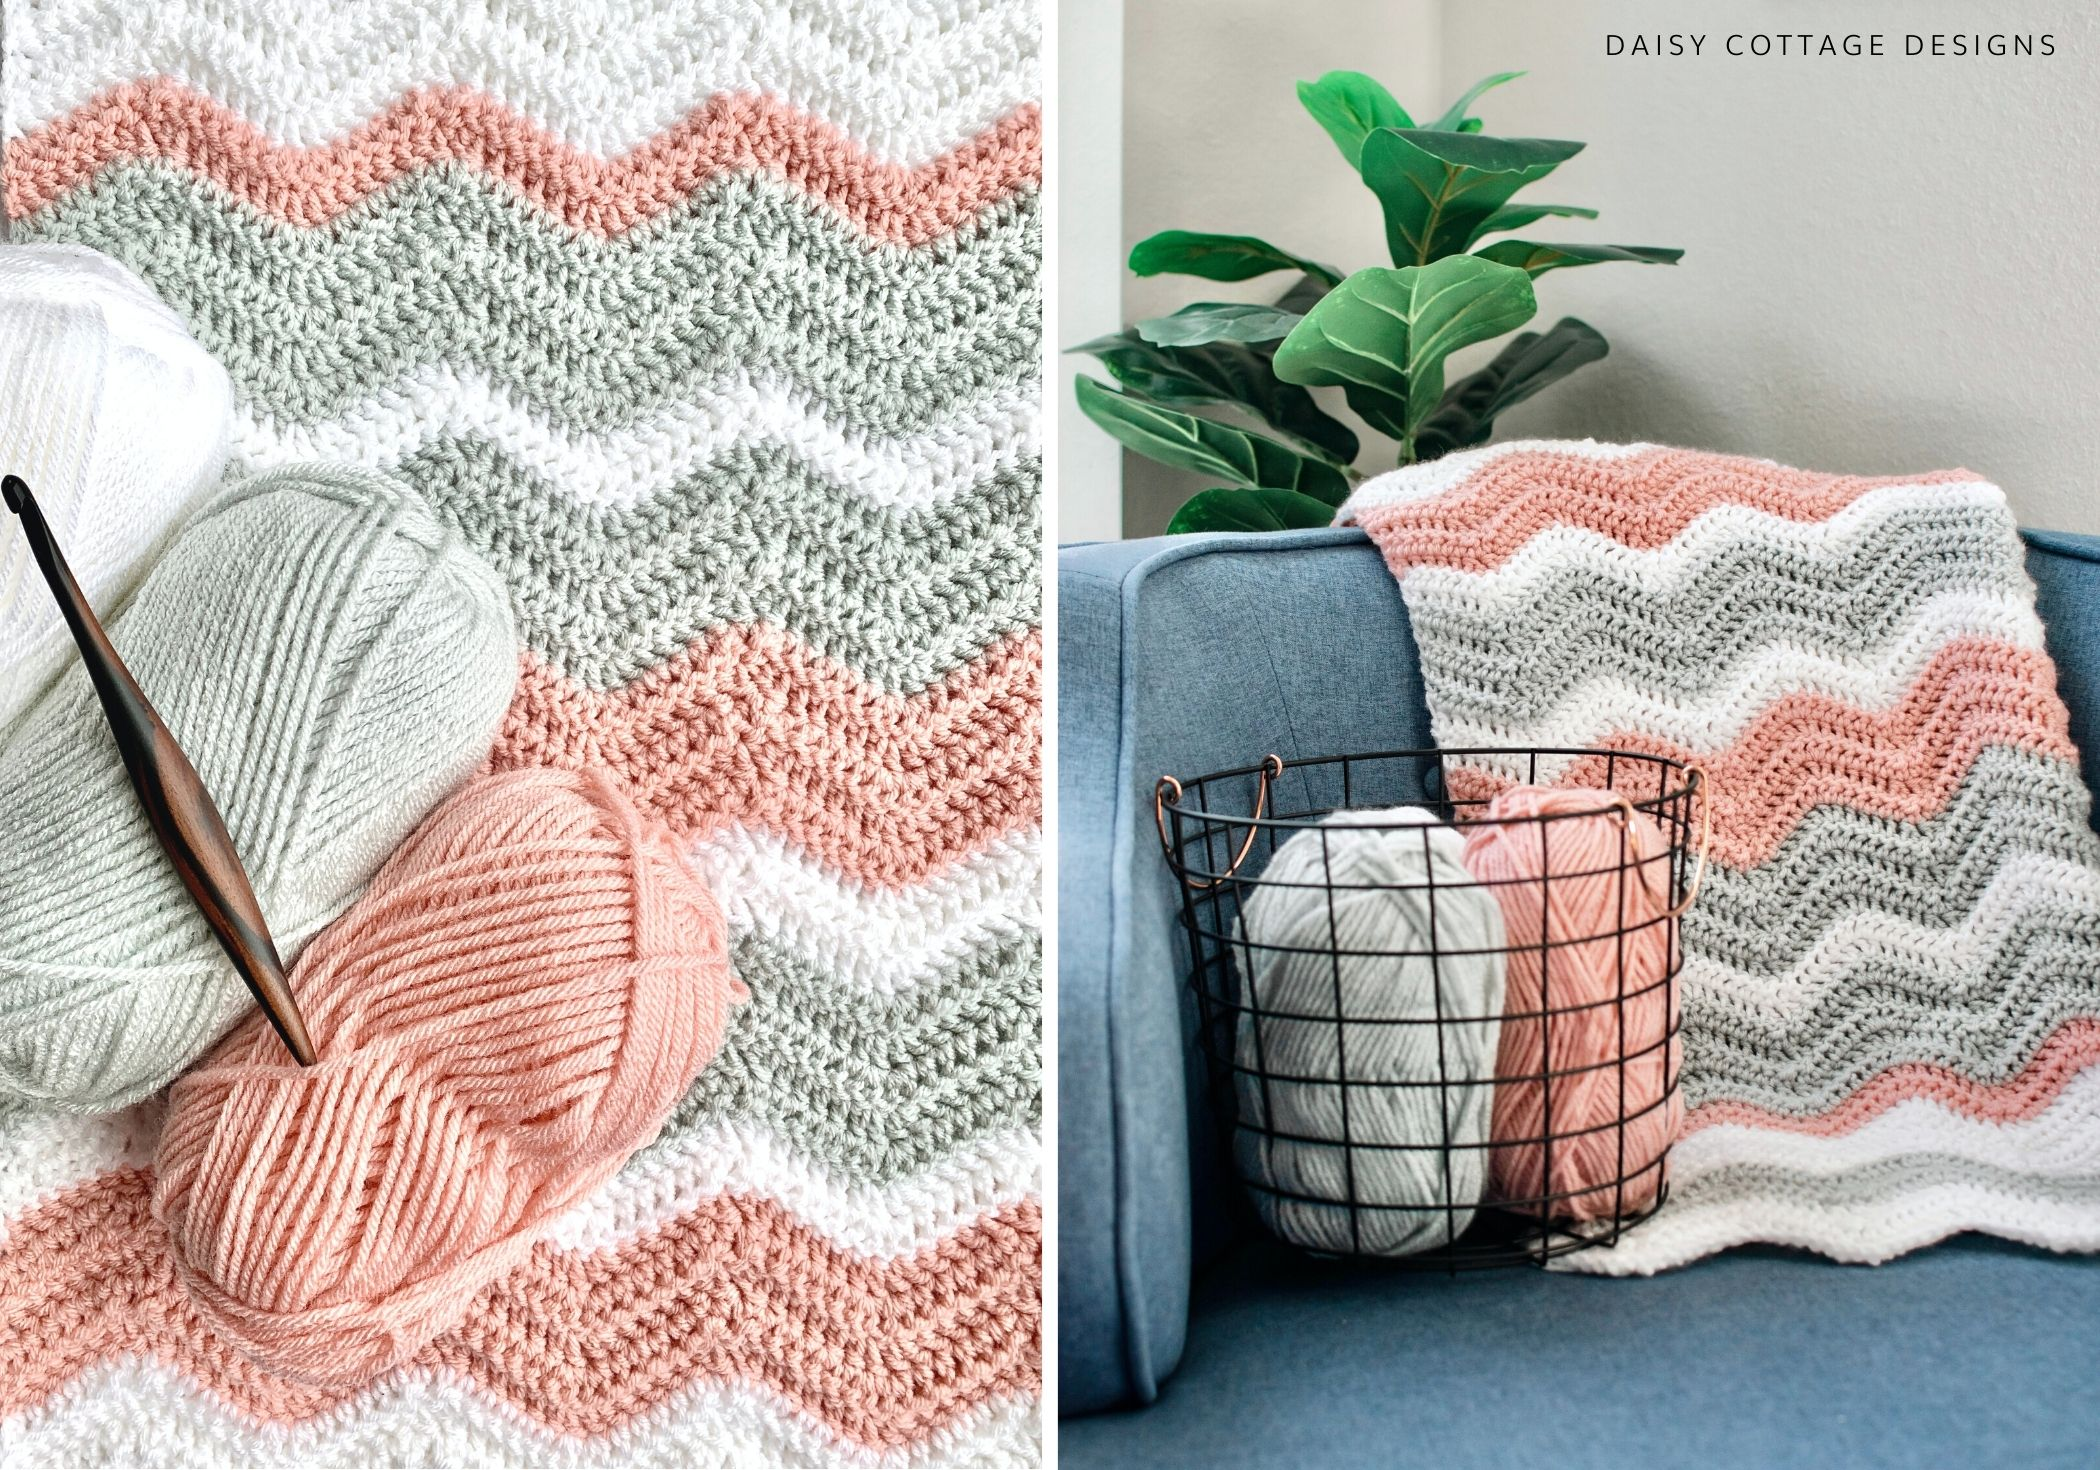 Crochet Patterns Of Baby Blankets : Ripple Blanket Crochet Pattern - Daisy Cottage Designs